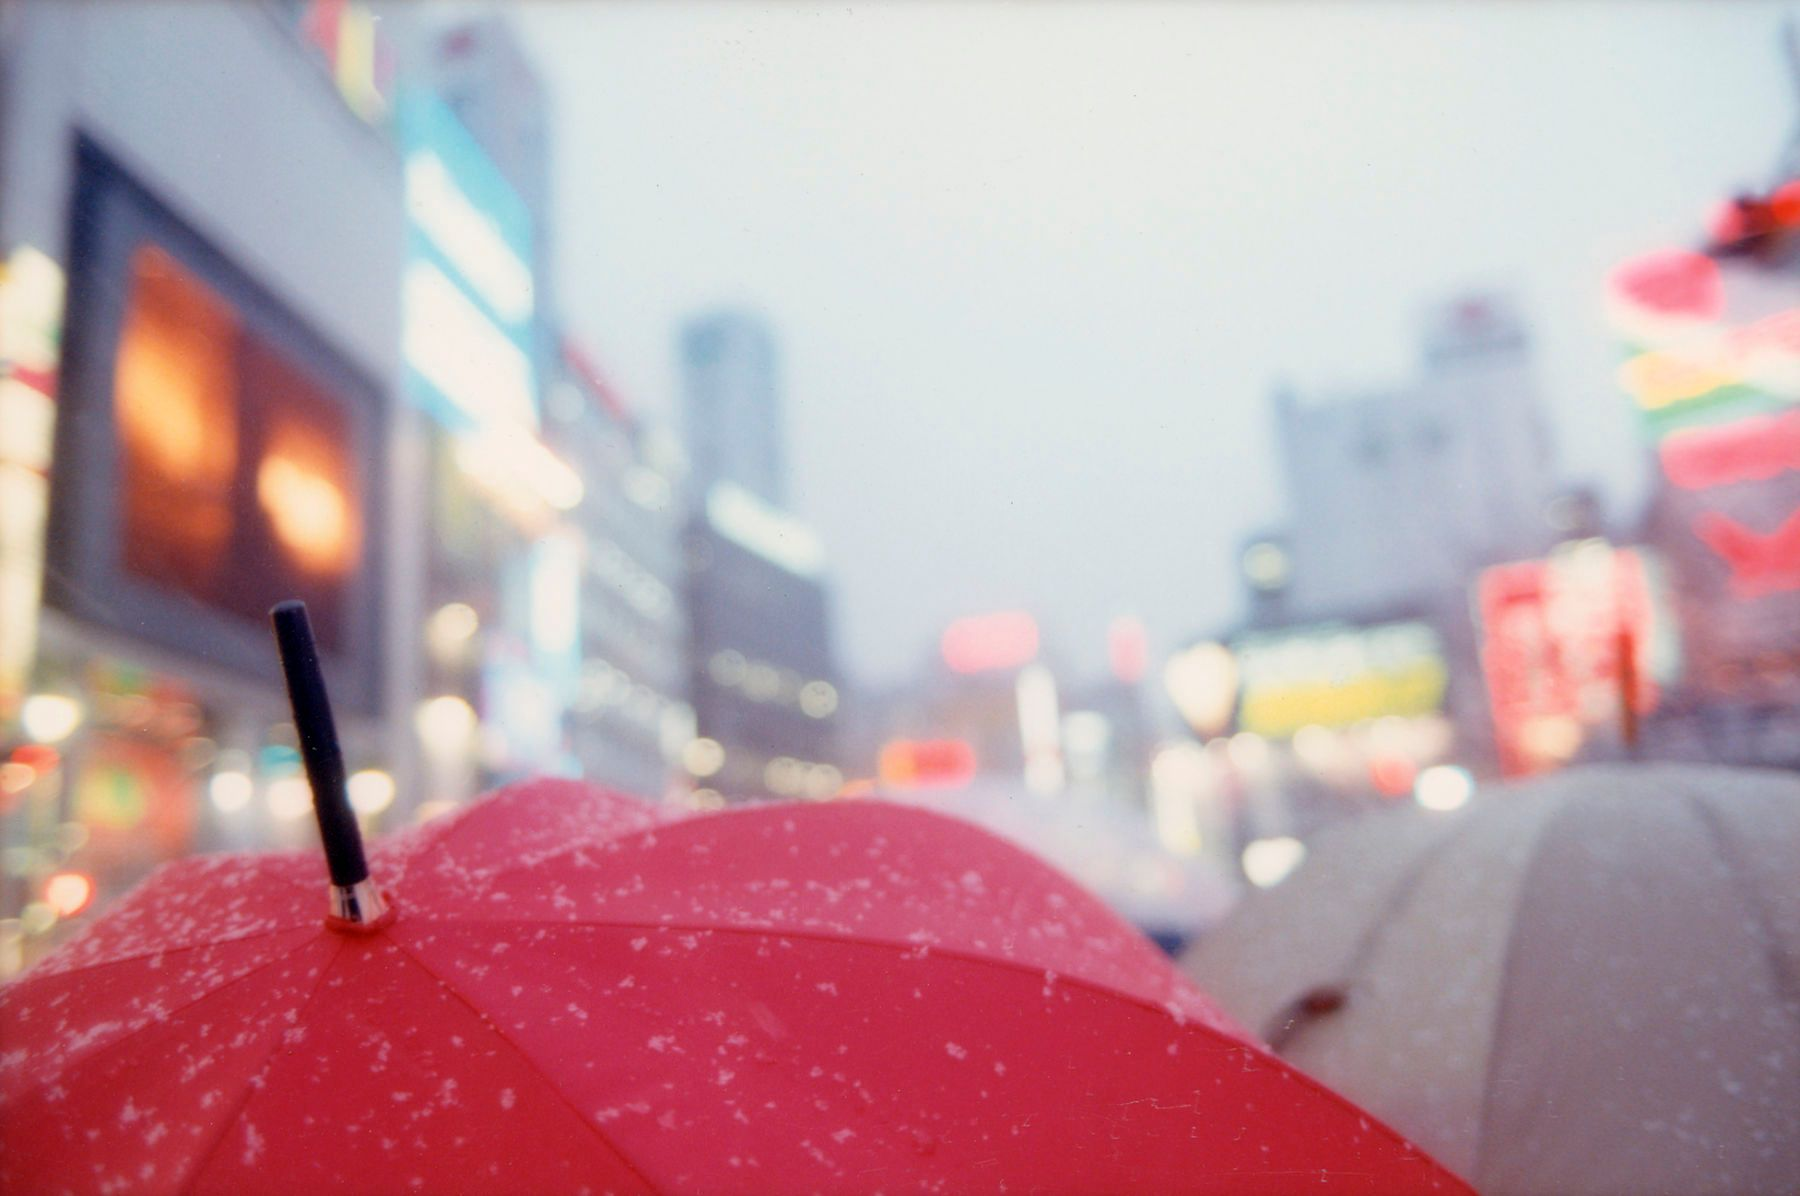 110316112949_1tokyp_red_umbrella.jpg